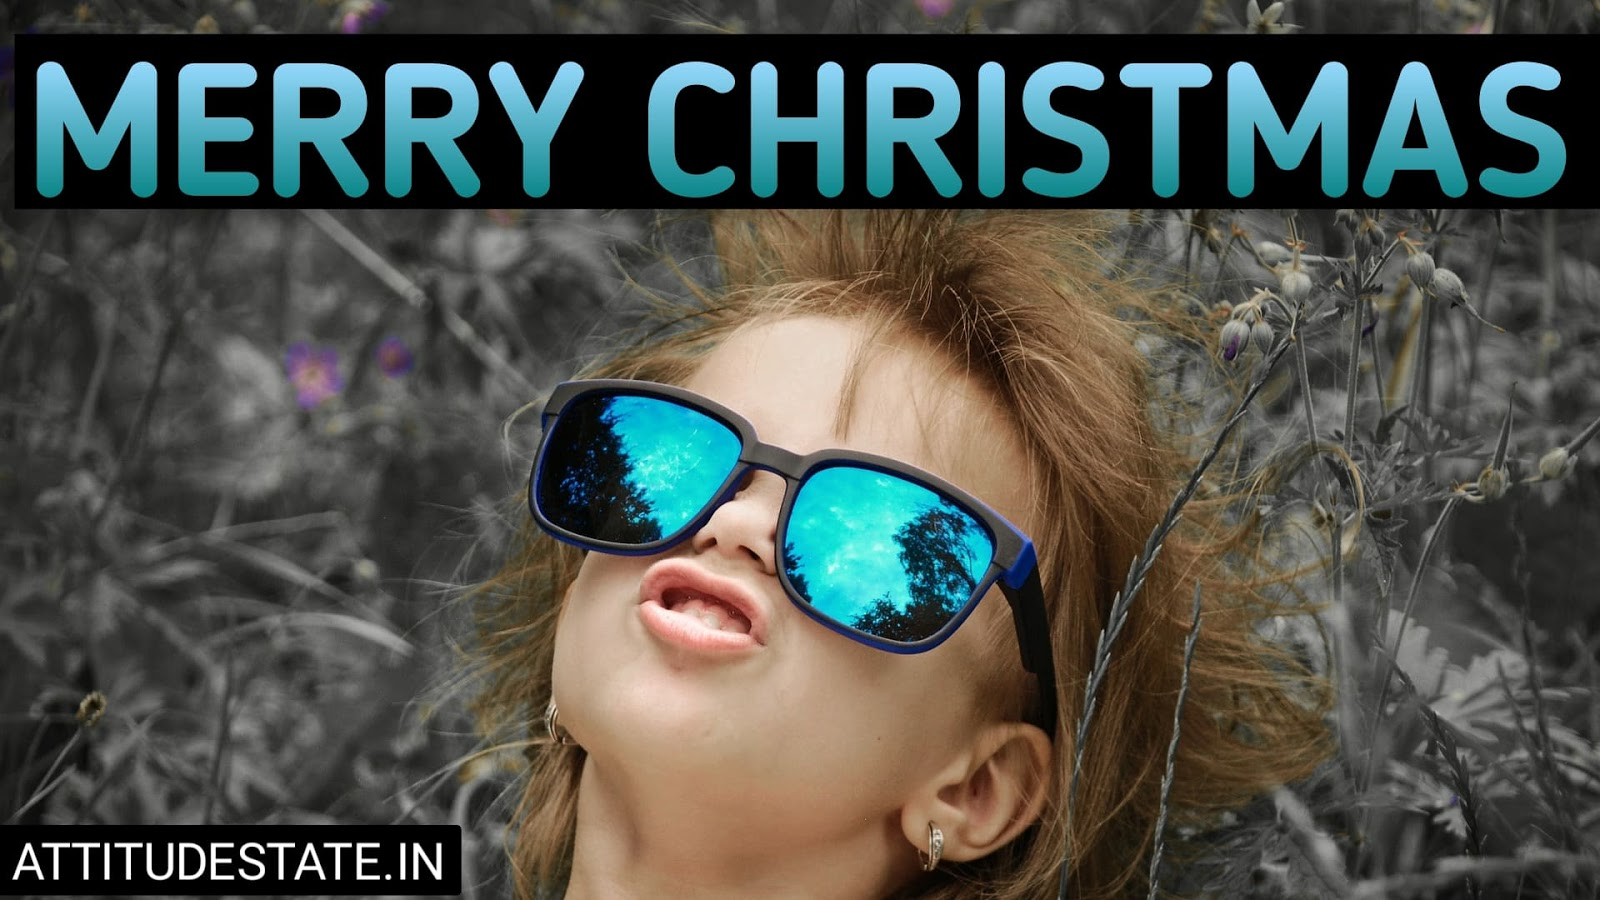 hilarious merry christmas images